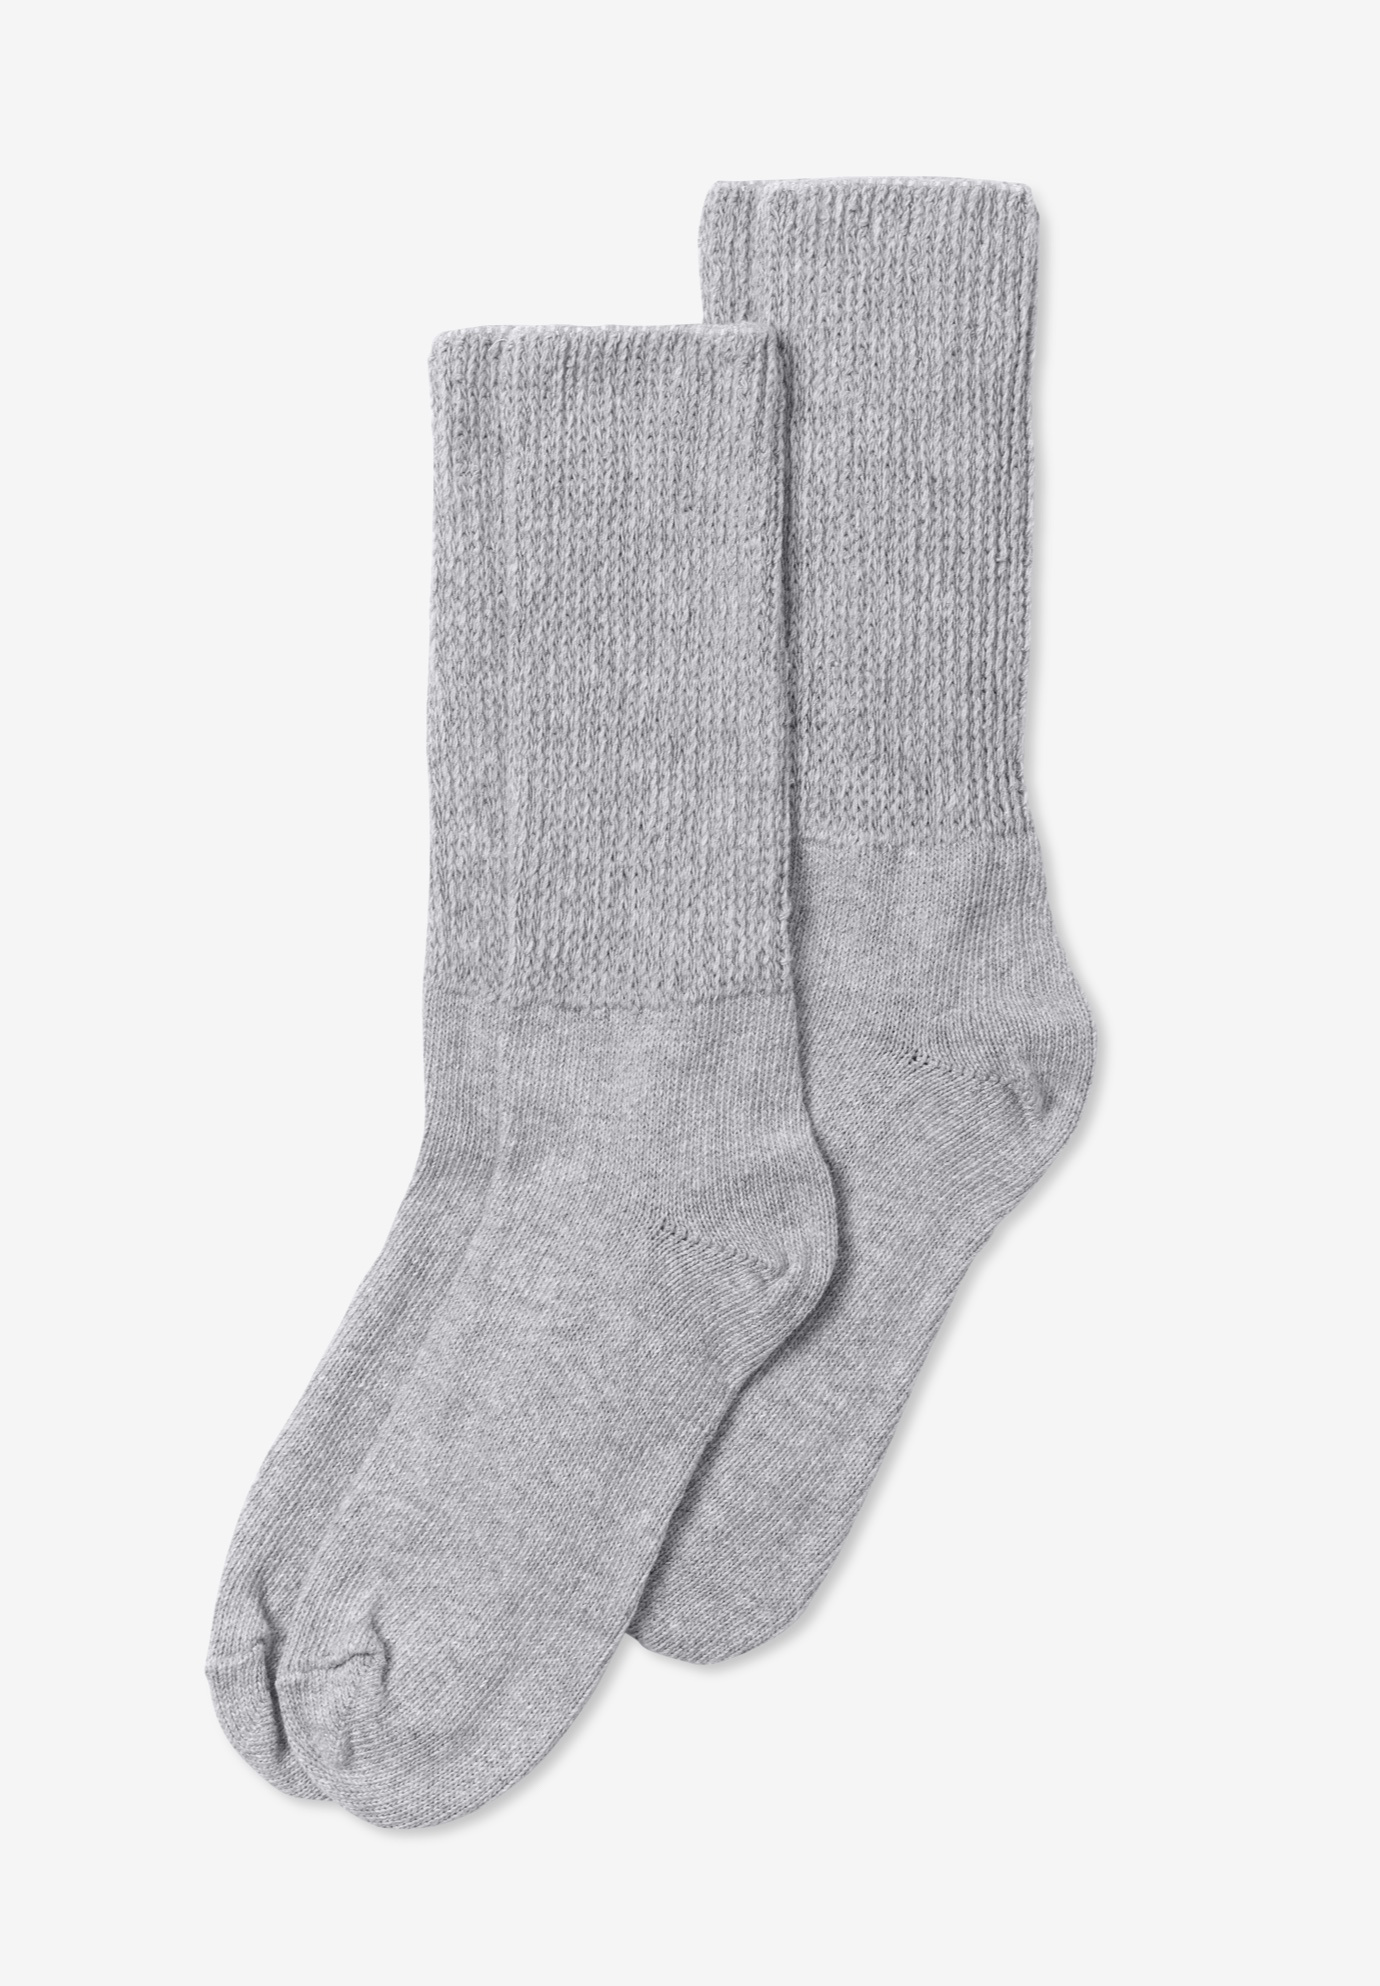 2-Pair Open Weave Extra Wide Socks by Comfort Choice®, HEATHER GREY, hi-res